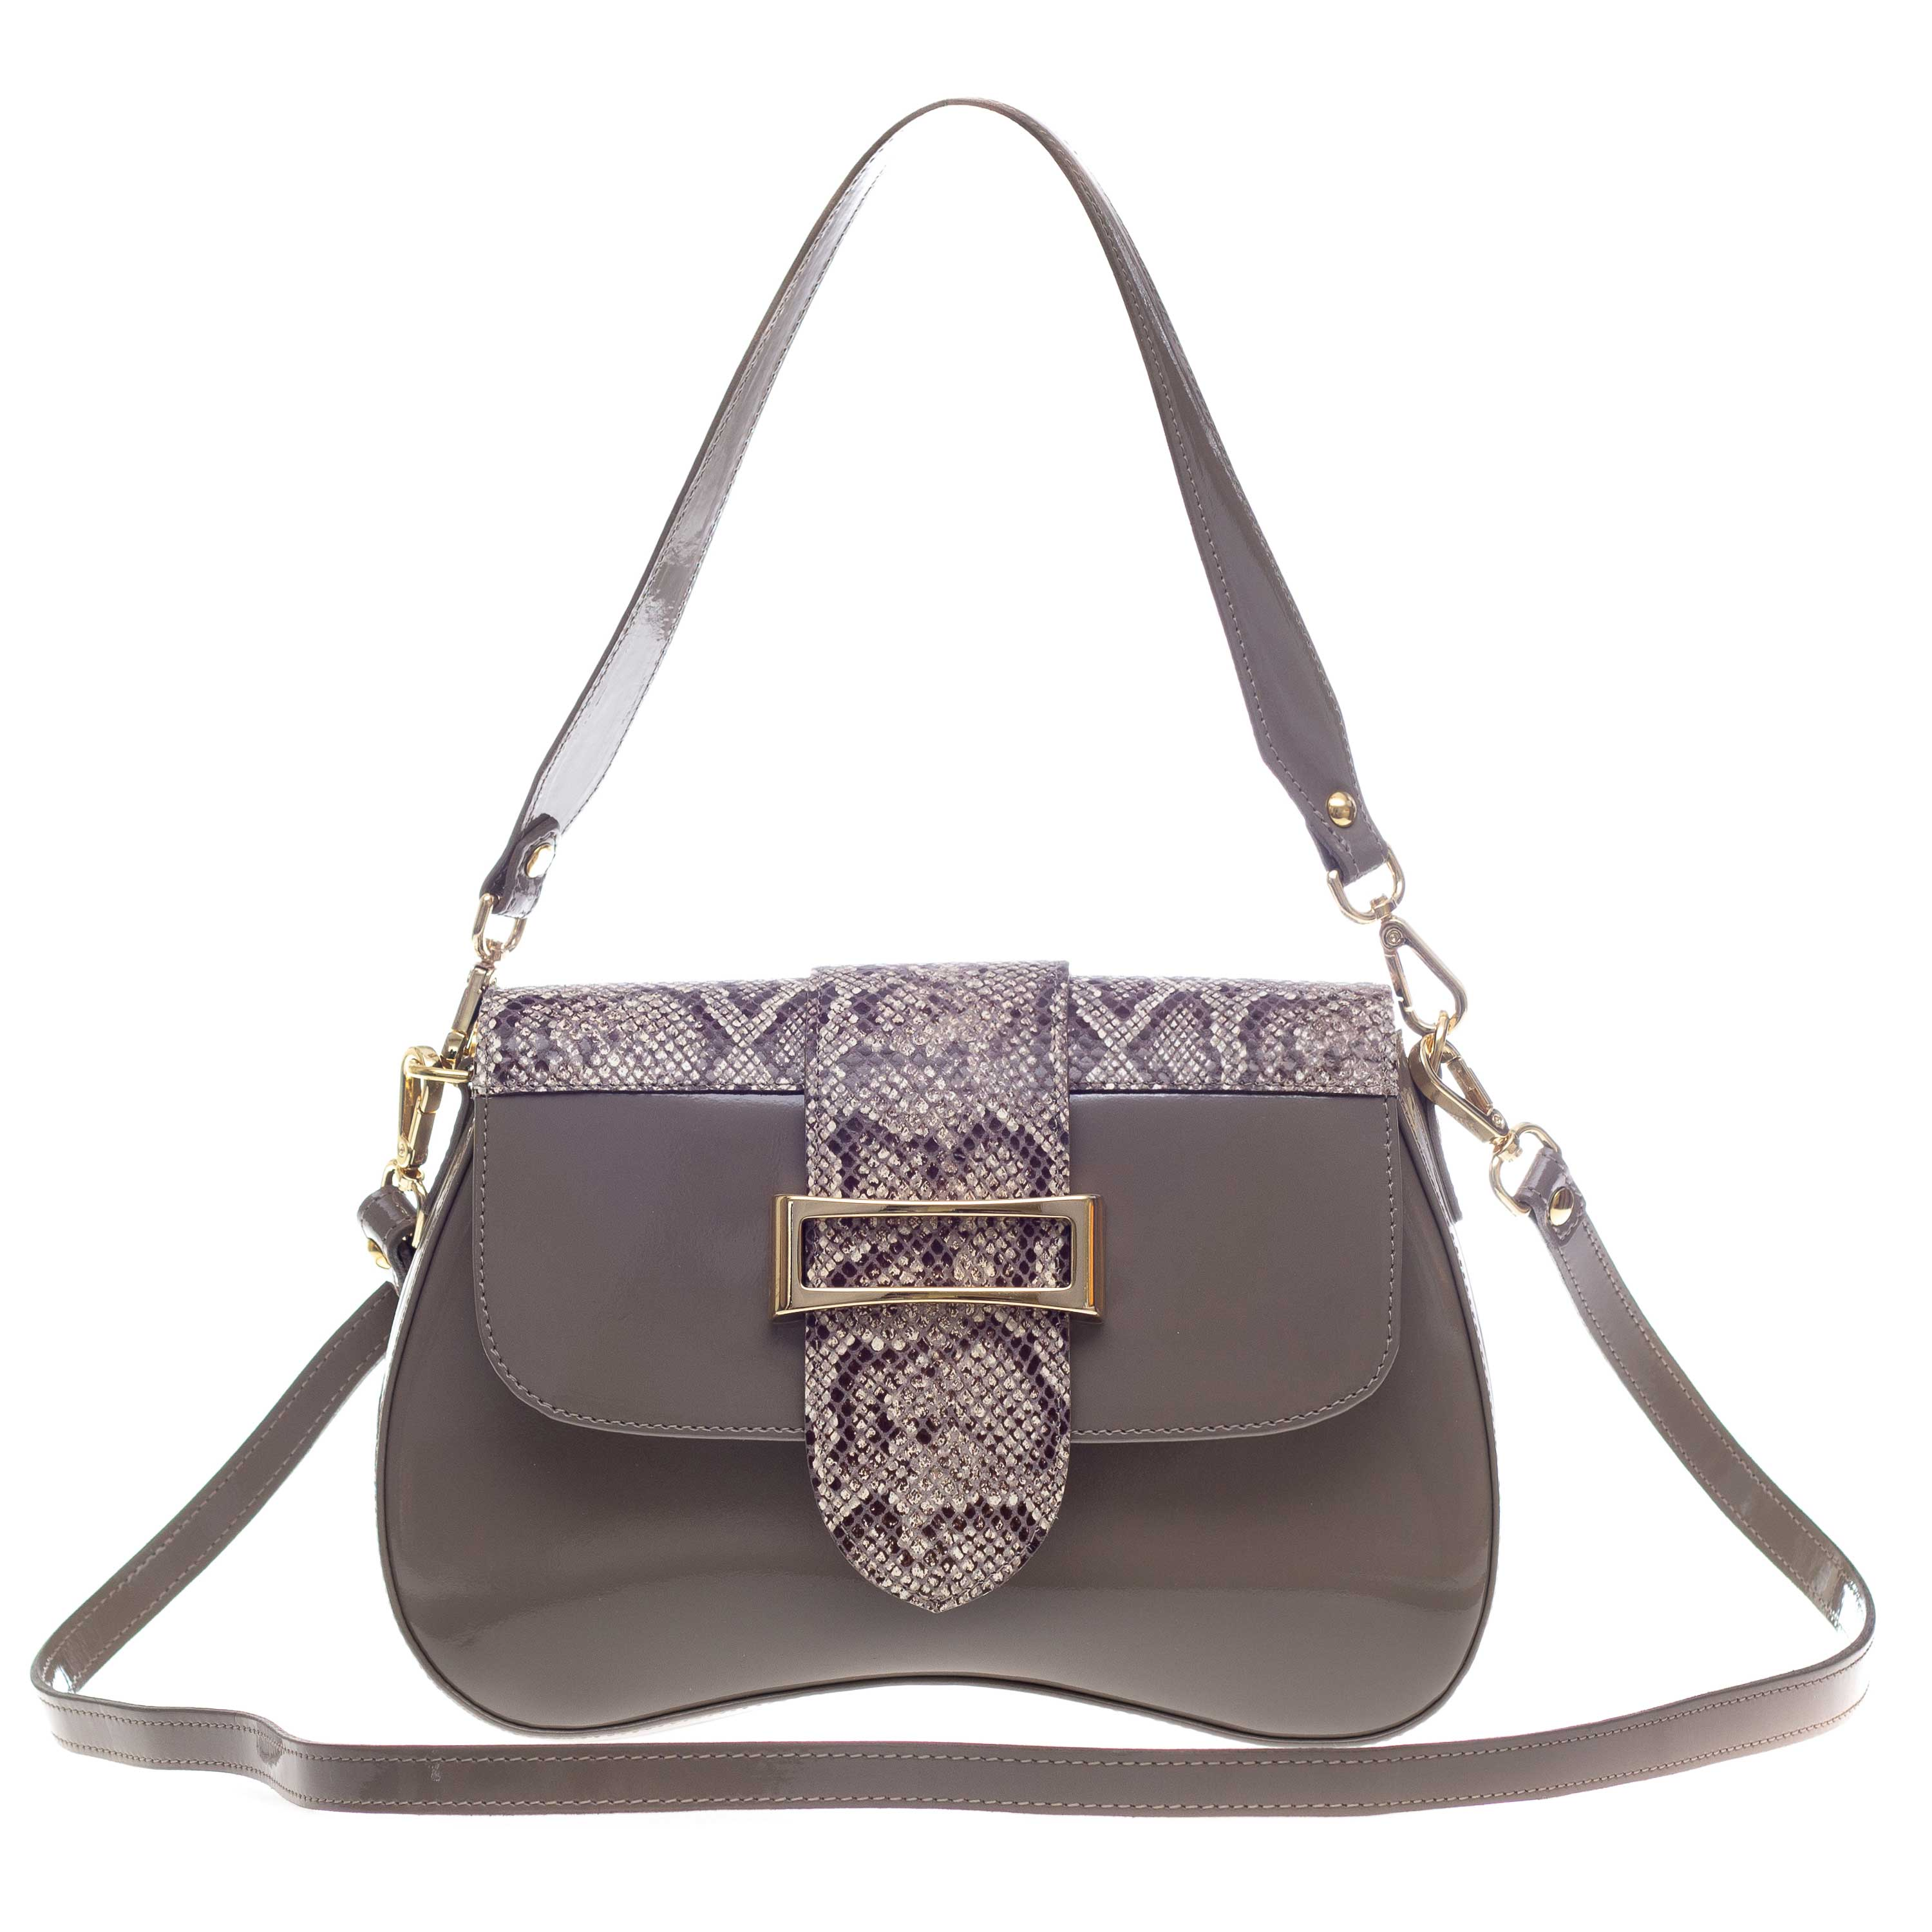 AURA Italian Made Taupe Patent Leather Small Crossbody Purse